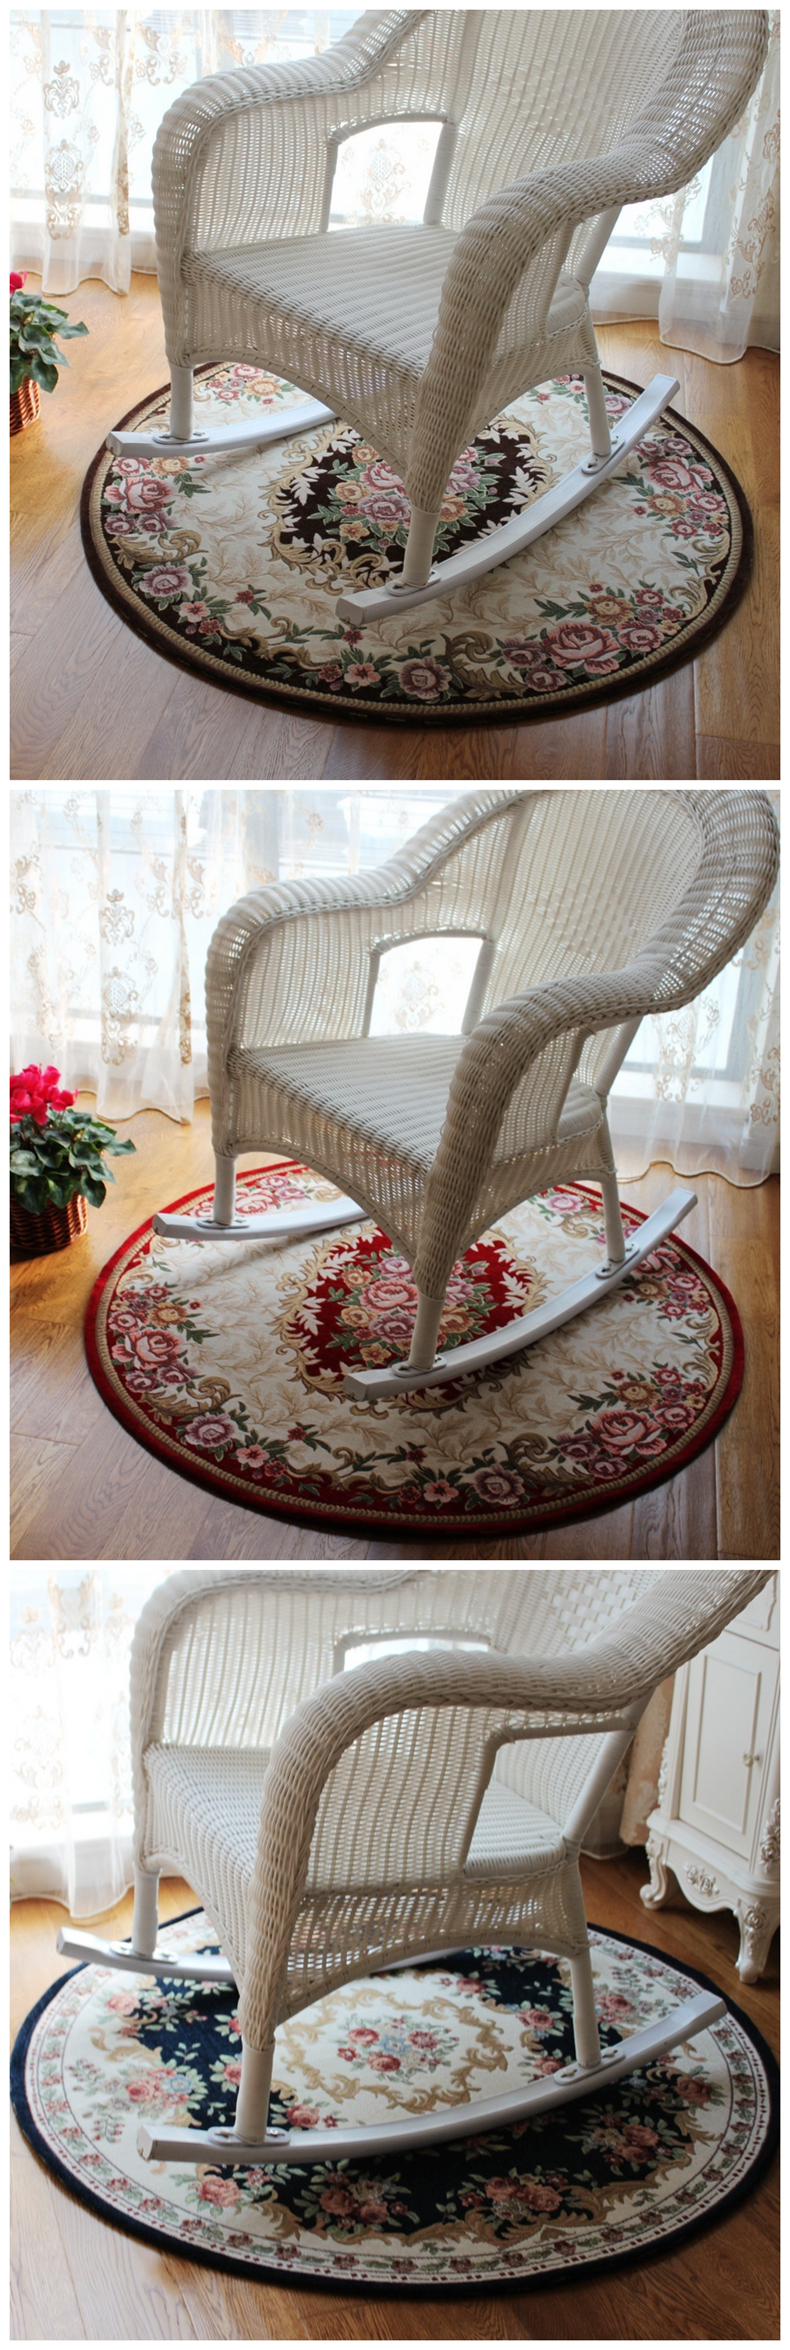 Luxury European Style Round Carpet For Living Room Cloakroom Soft Area Rugs For Swivel Chair Large Anti Slip Parlor Floor Mat